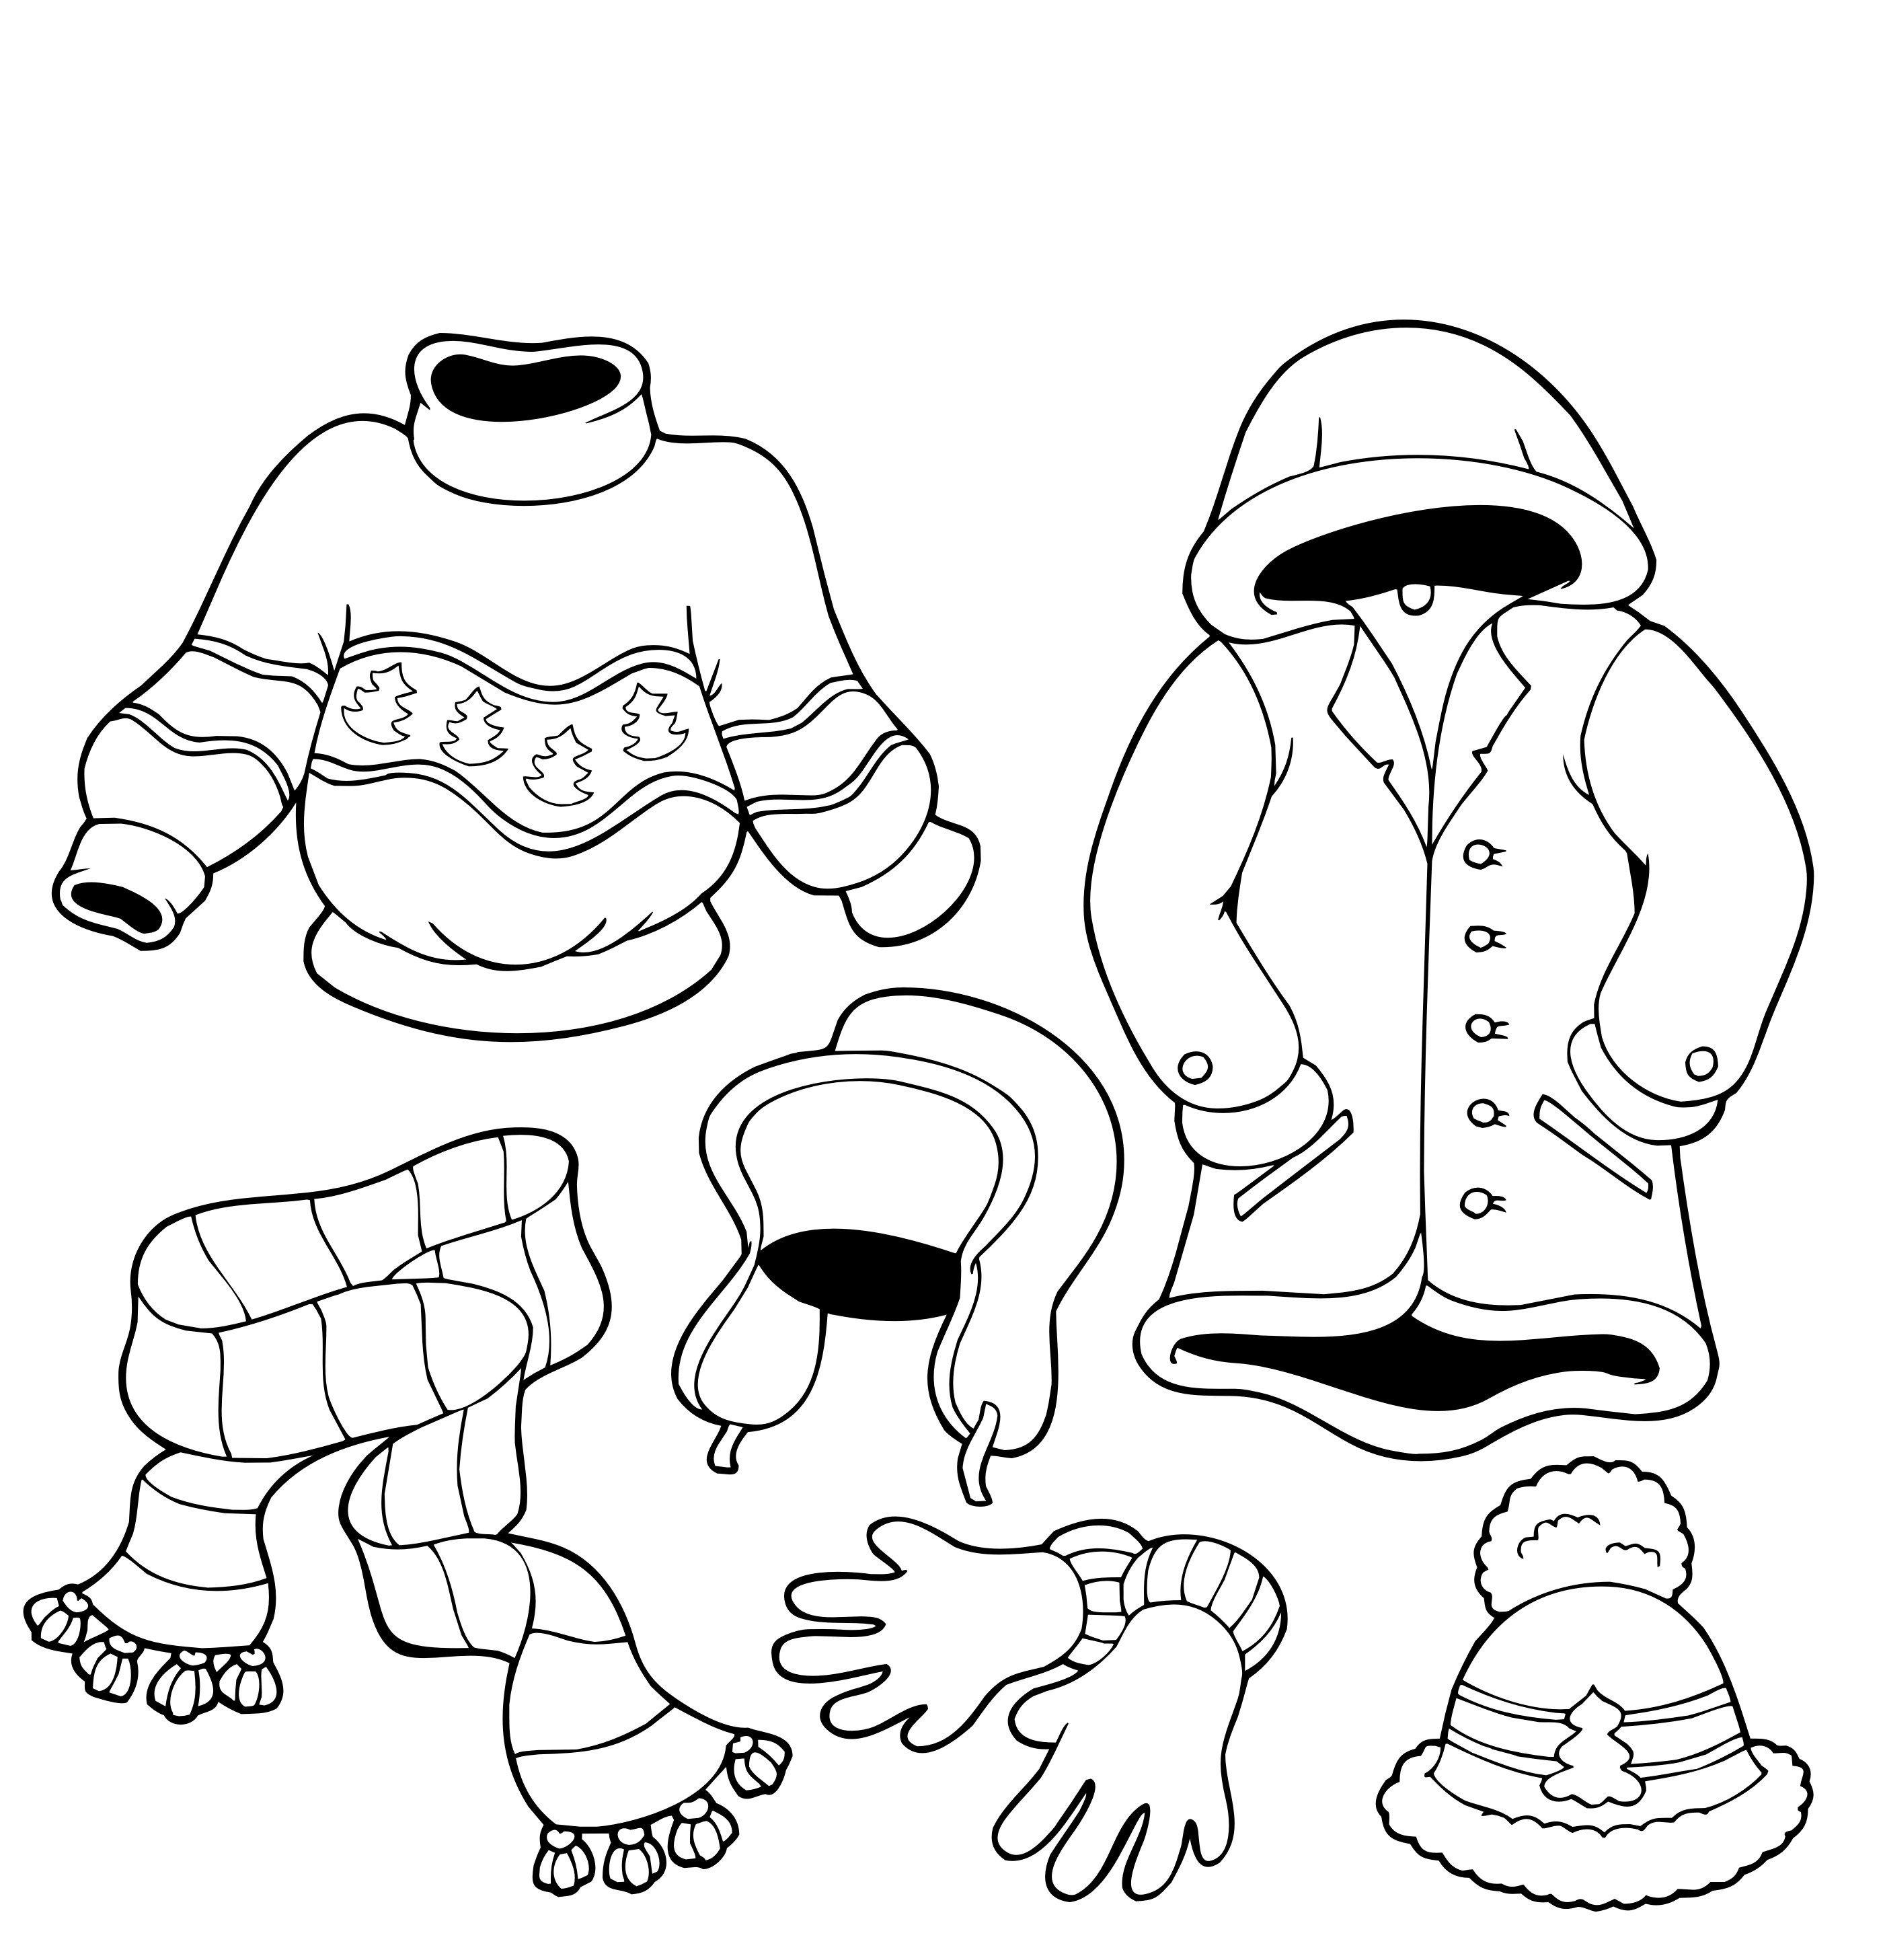 Color These Beautiful Winter Coloring Pages With Kids Free Coloring Sheets Coloring Pages Winter Coloring Books Preschool Coloring Pages